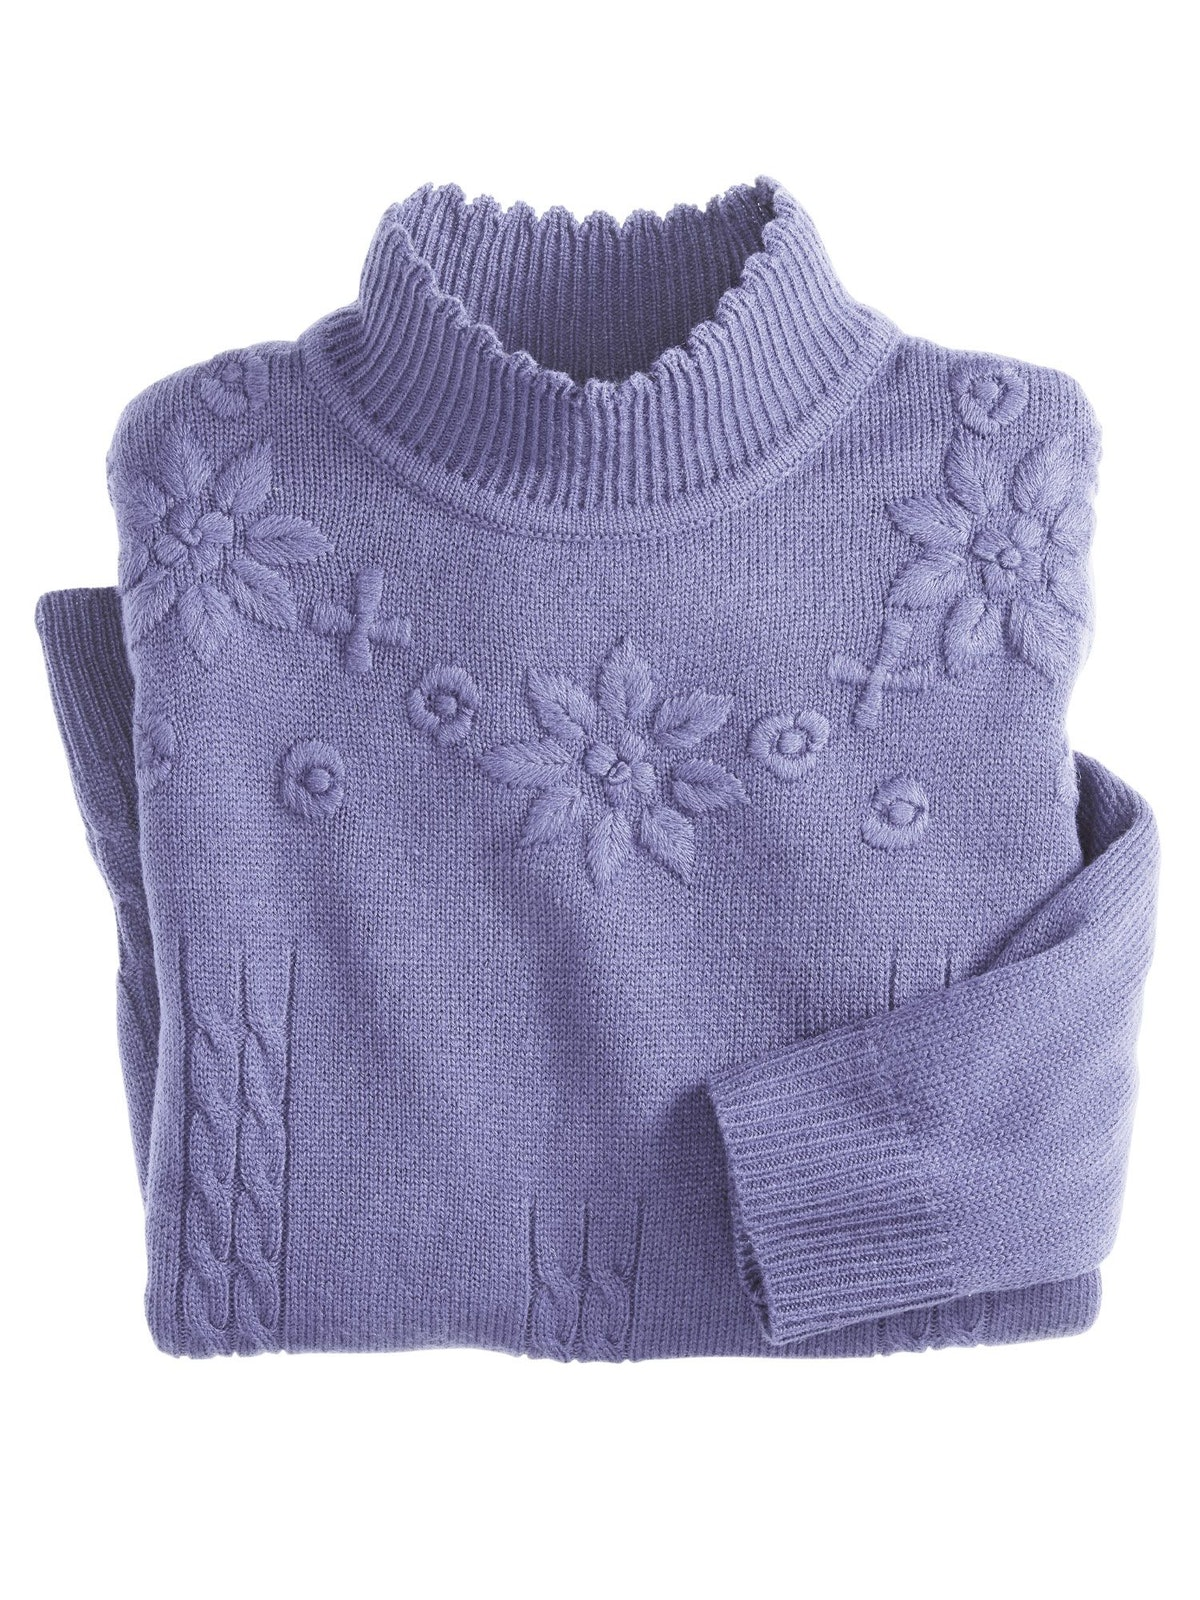 Women's Floral Detail Sweater